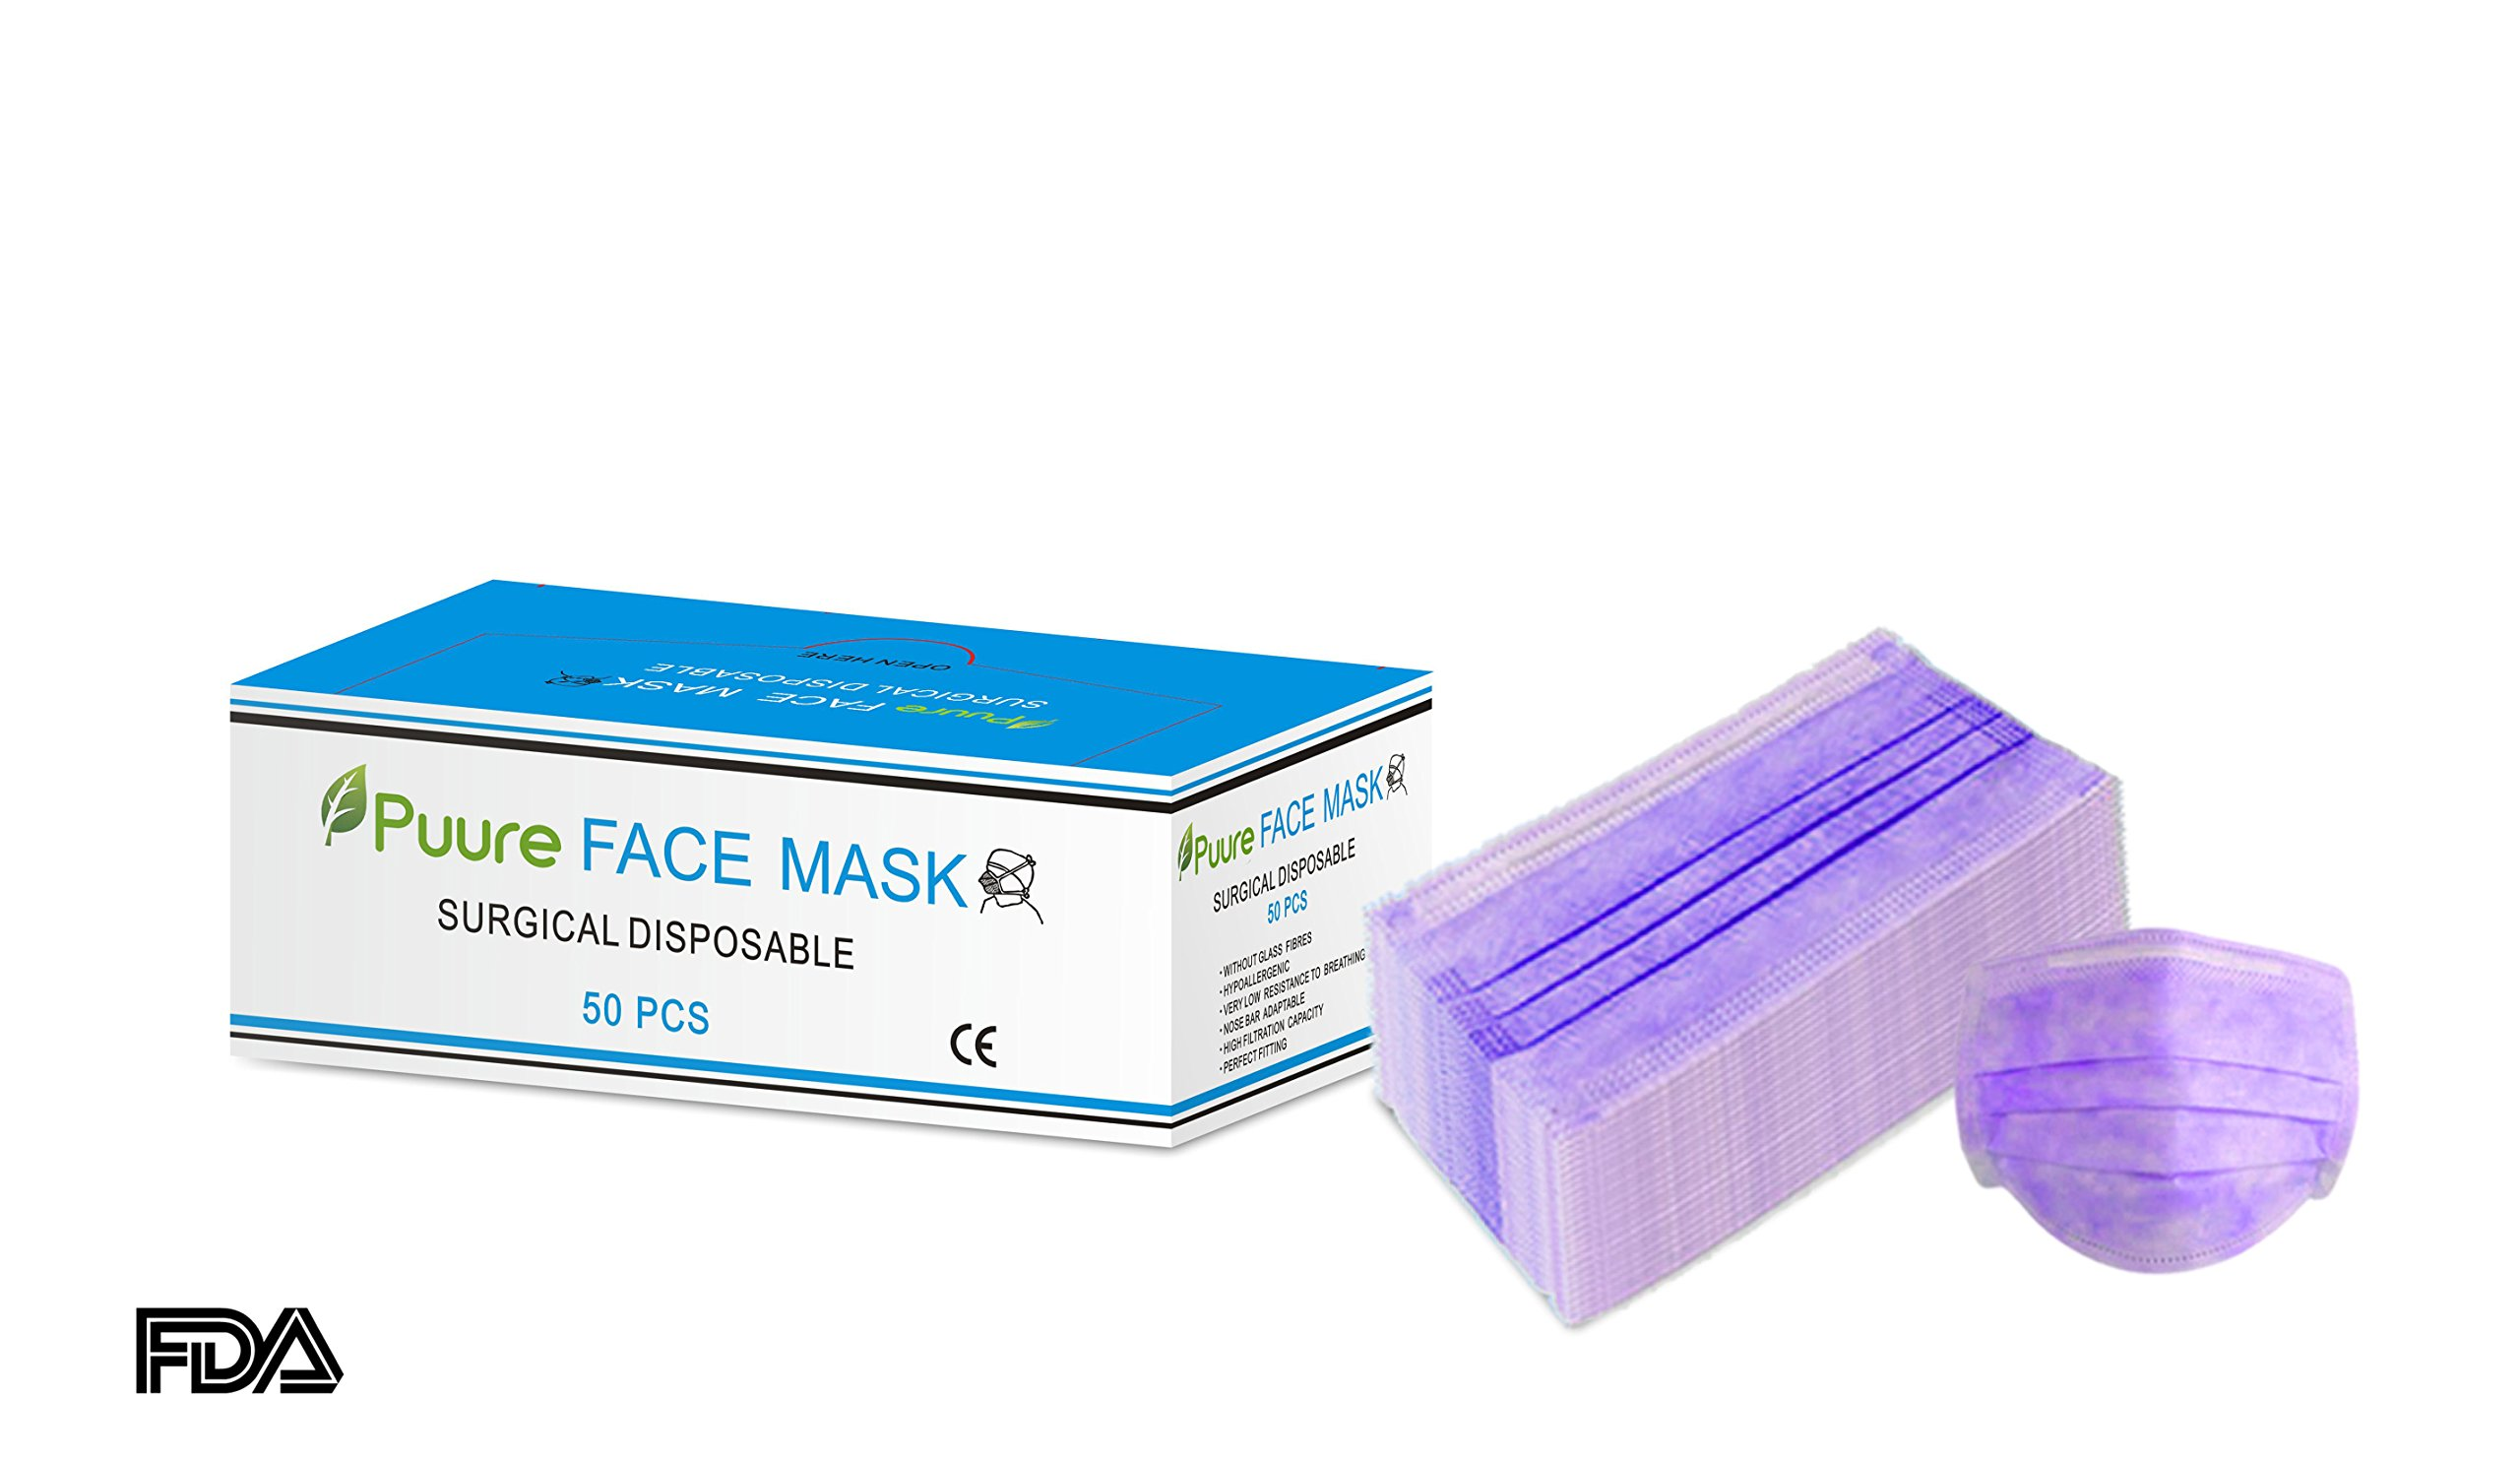 PUURE Best quality earloop Disposable Surgical Face Flu Masks, 3+1(Filter layer) Ply Thicker Super Filter Pollen Dust and Bacteria, Anti allergy Dental Medical Procedure Mask, Pack of 50 Pcs (Purple)